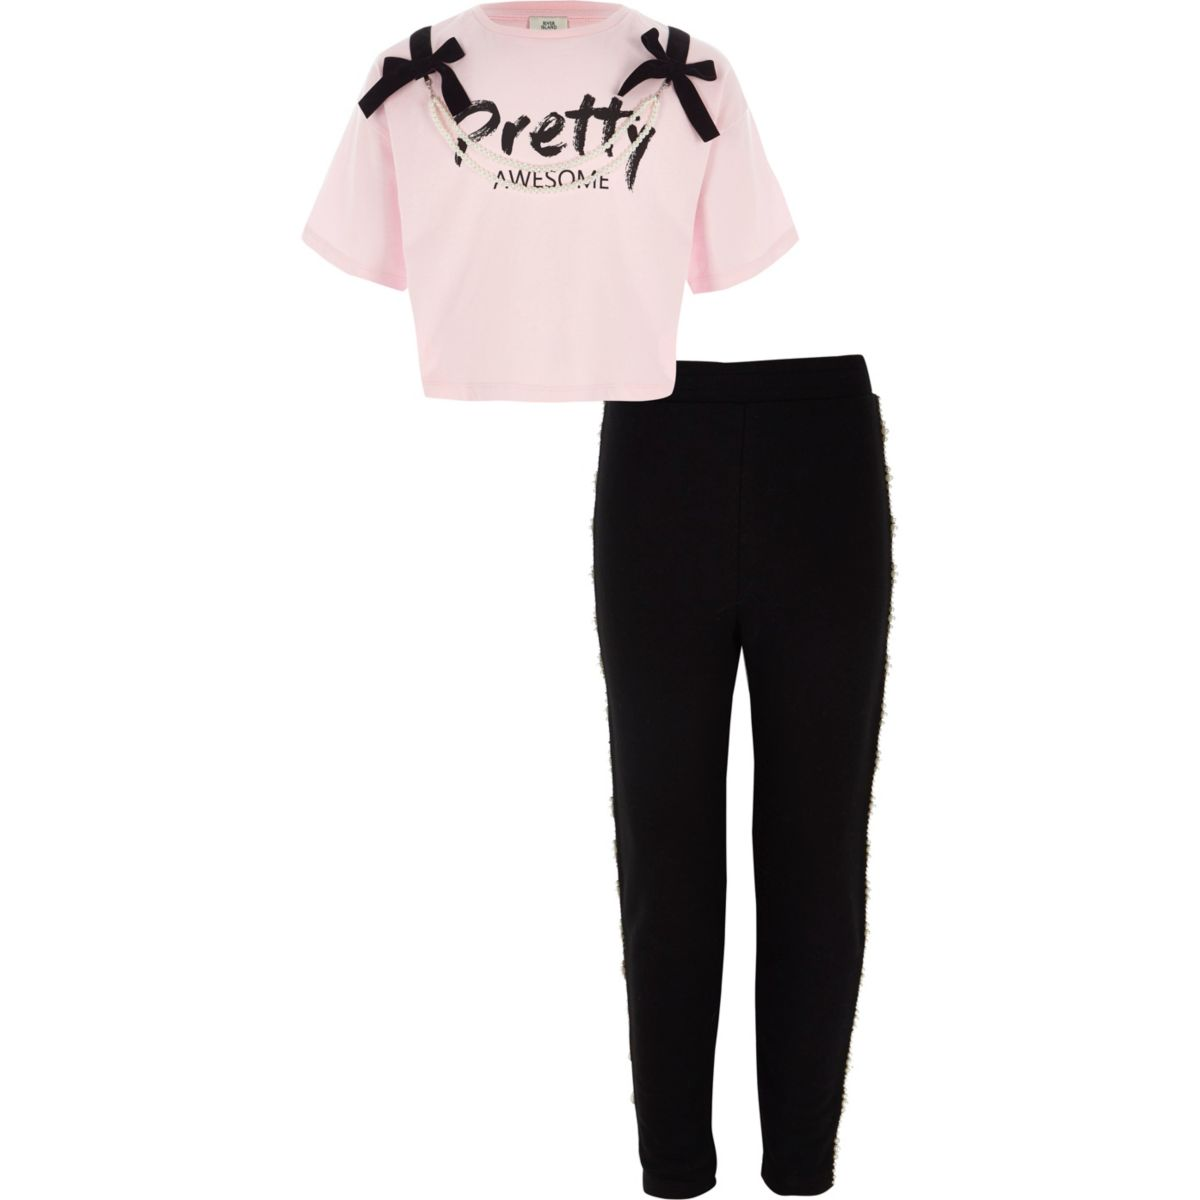 Girls Pink Pearl Embellished T-shirt Outfit - Sets U0026 Outfits - Girls